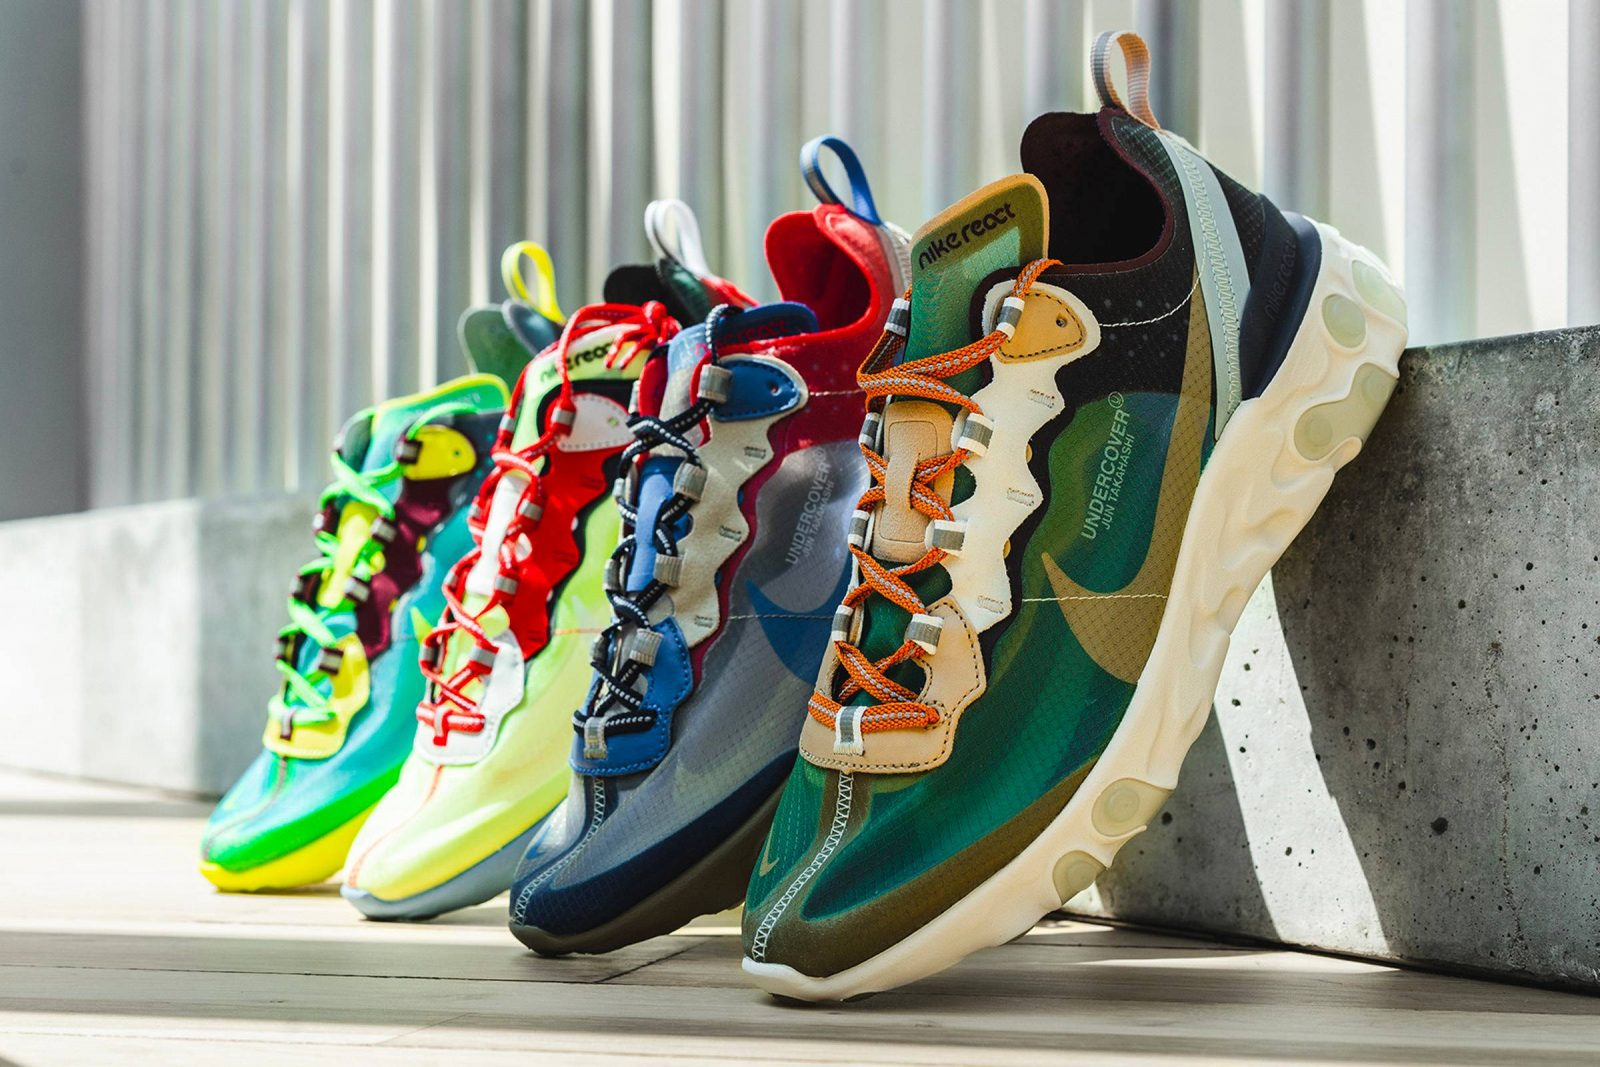 We Love the Nike Air Max 270 React Sneaker History